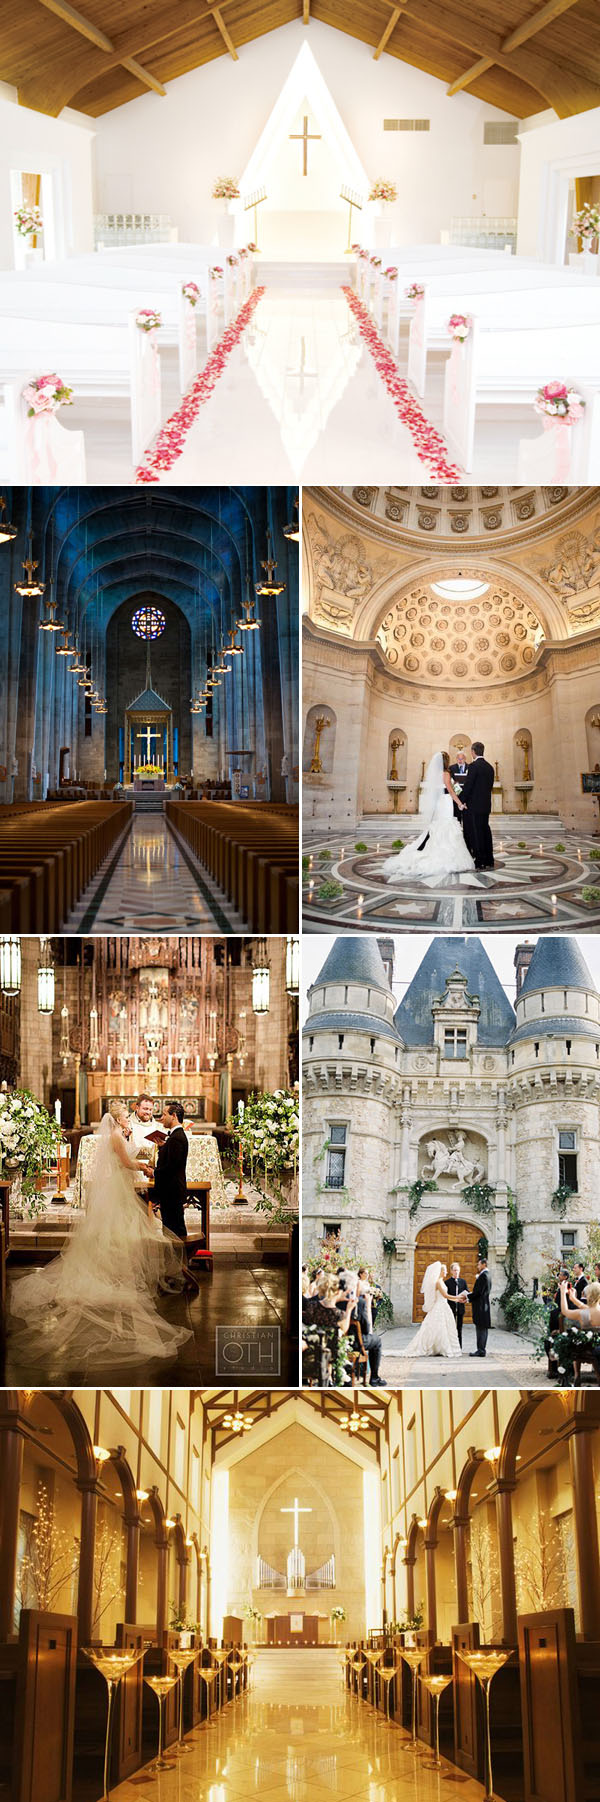 Chapel and Castle wedding altar ideas for traditional events